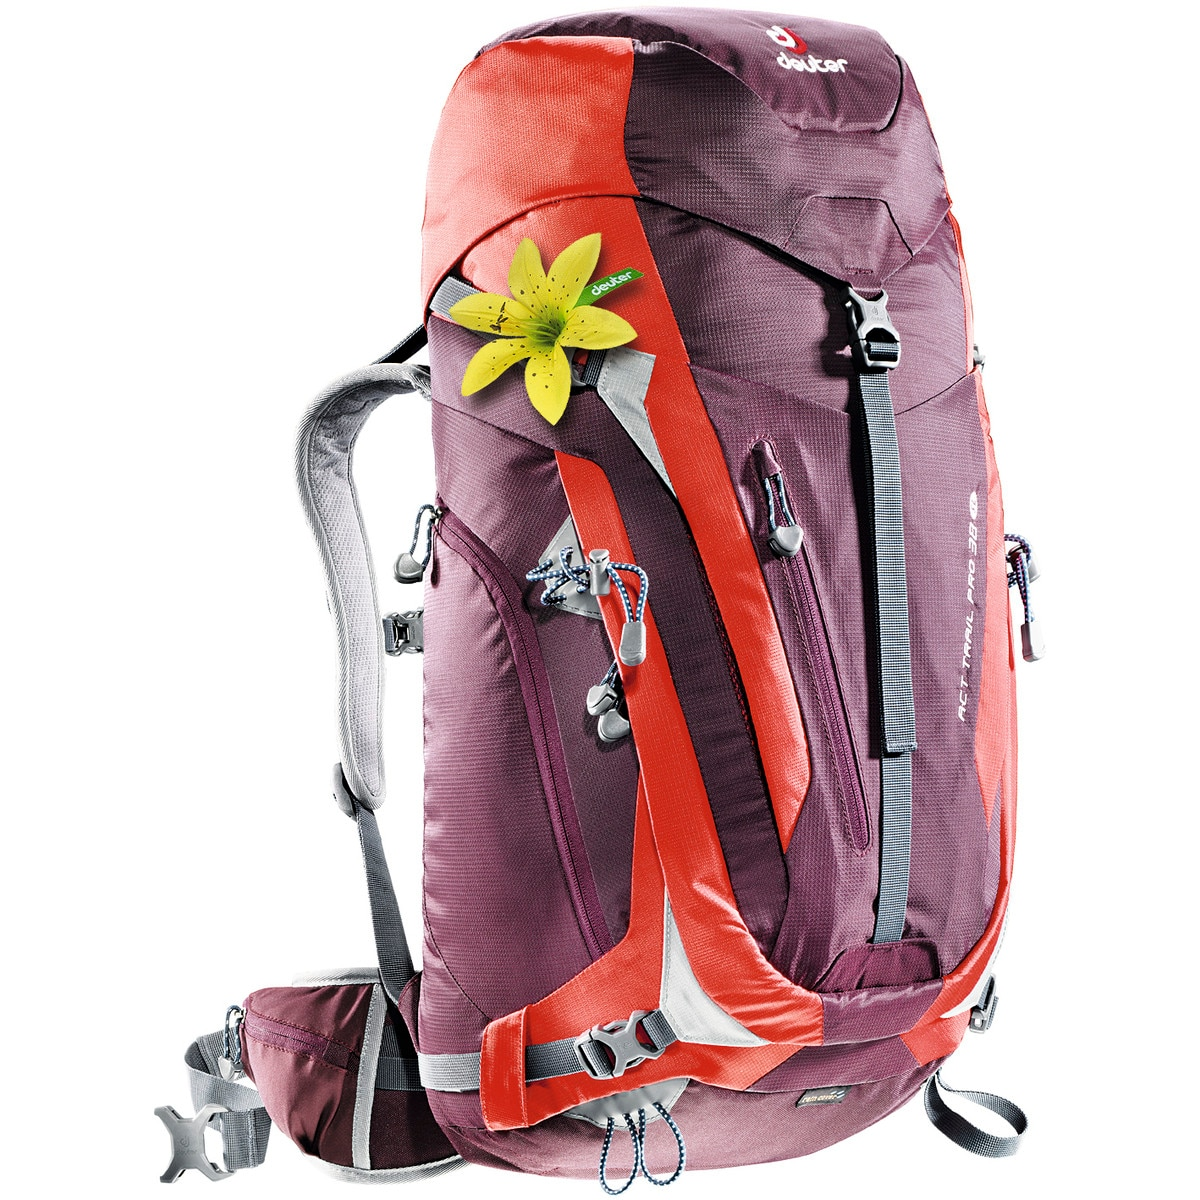 Deuter ACT Trail Pro 38 SL Backpack